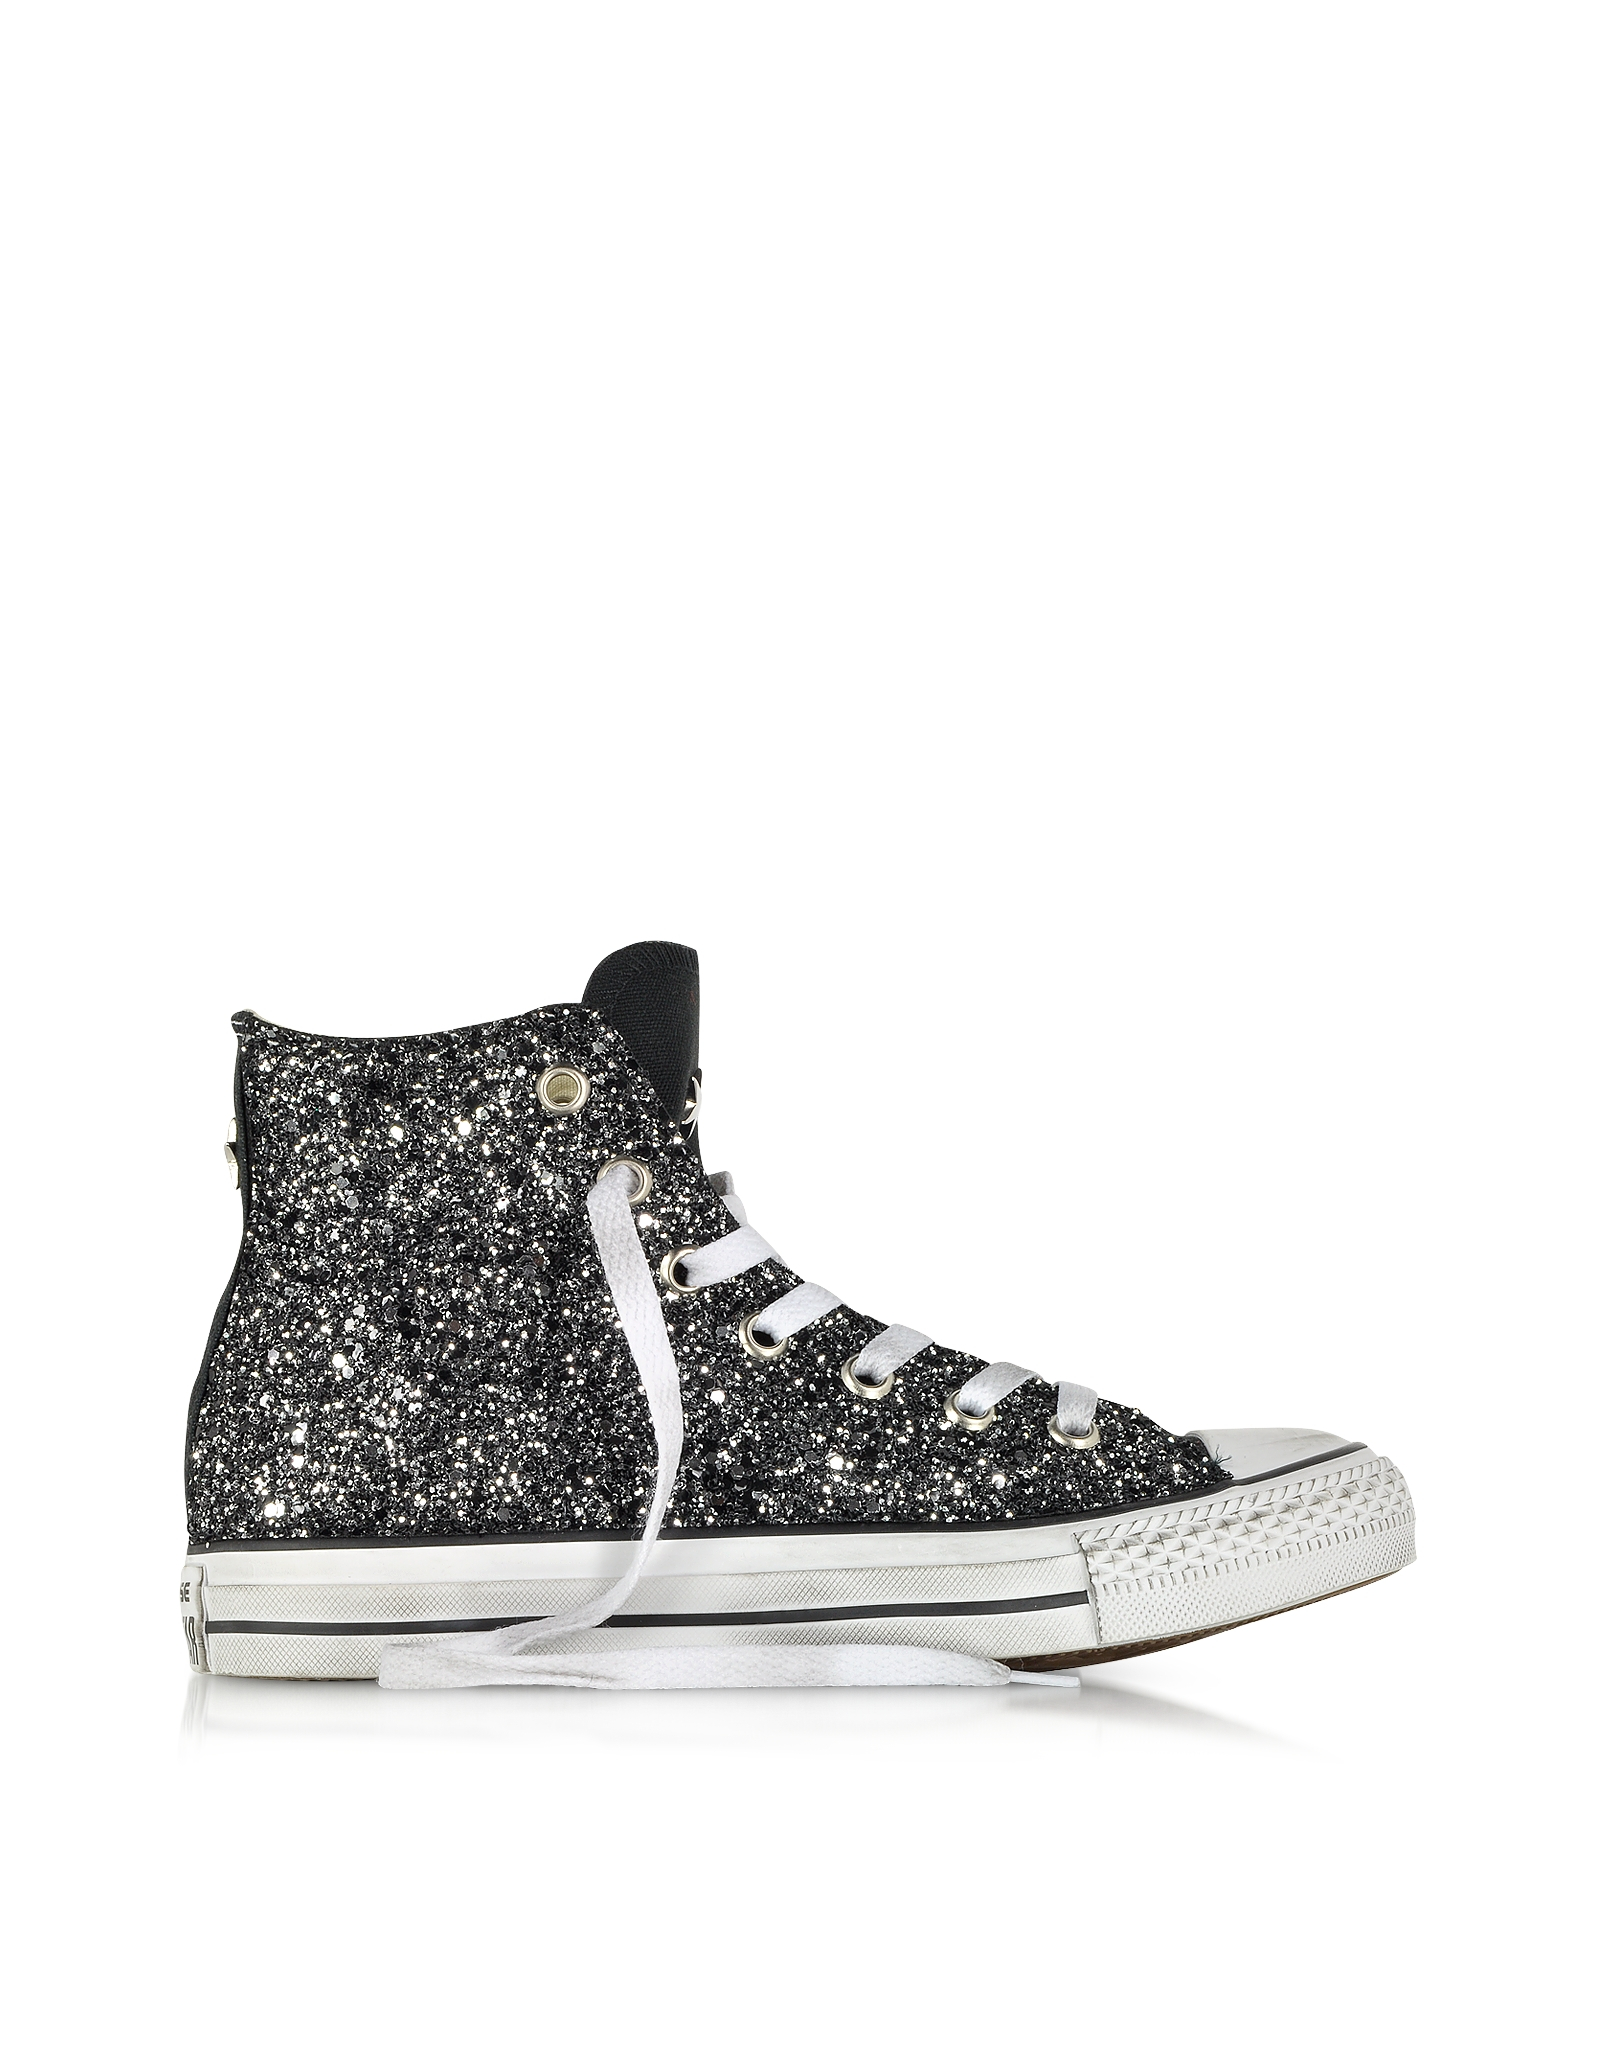 Lyst converse all star hi black canvas silver glitter ltd jpg 1600x2050 Black  sparkle high top 75ed51034